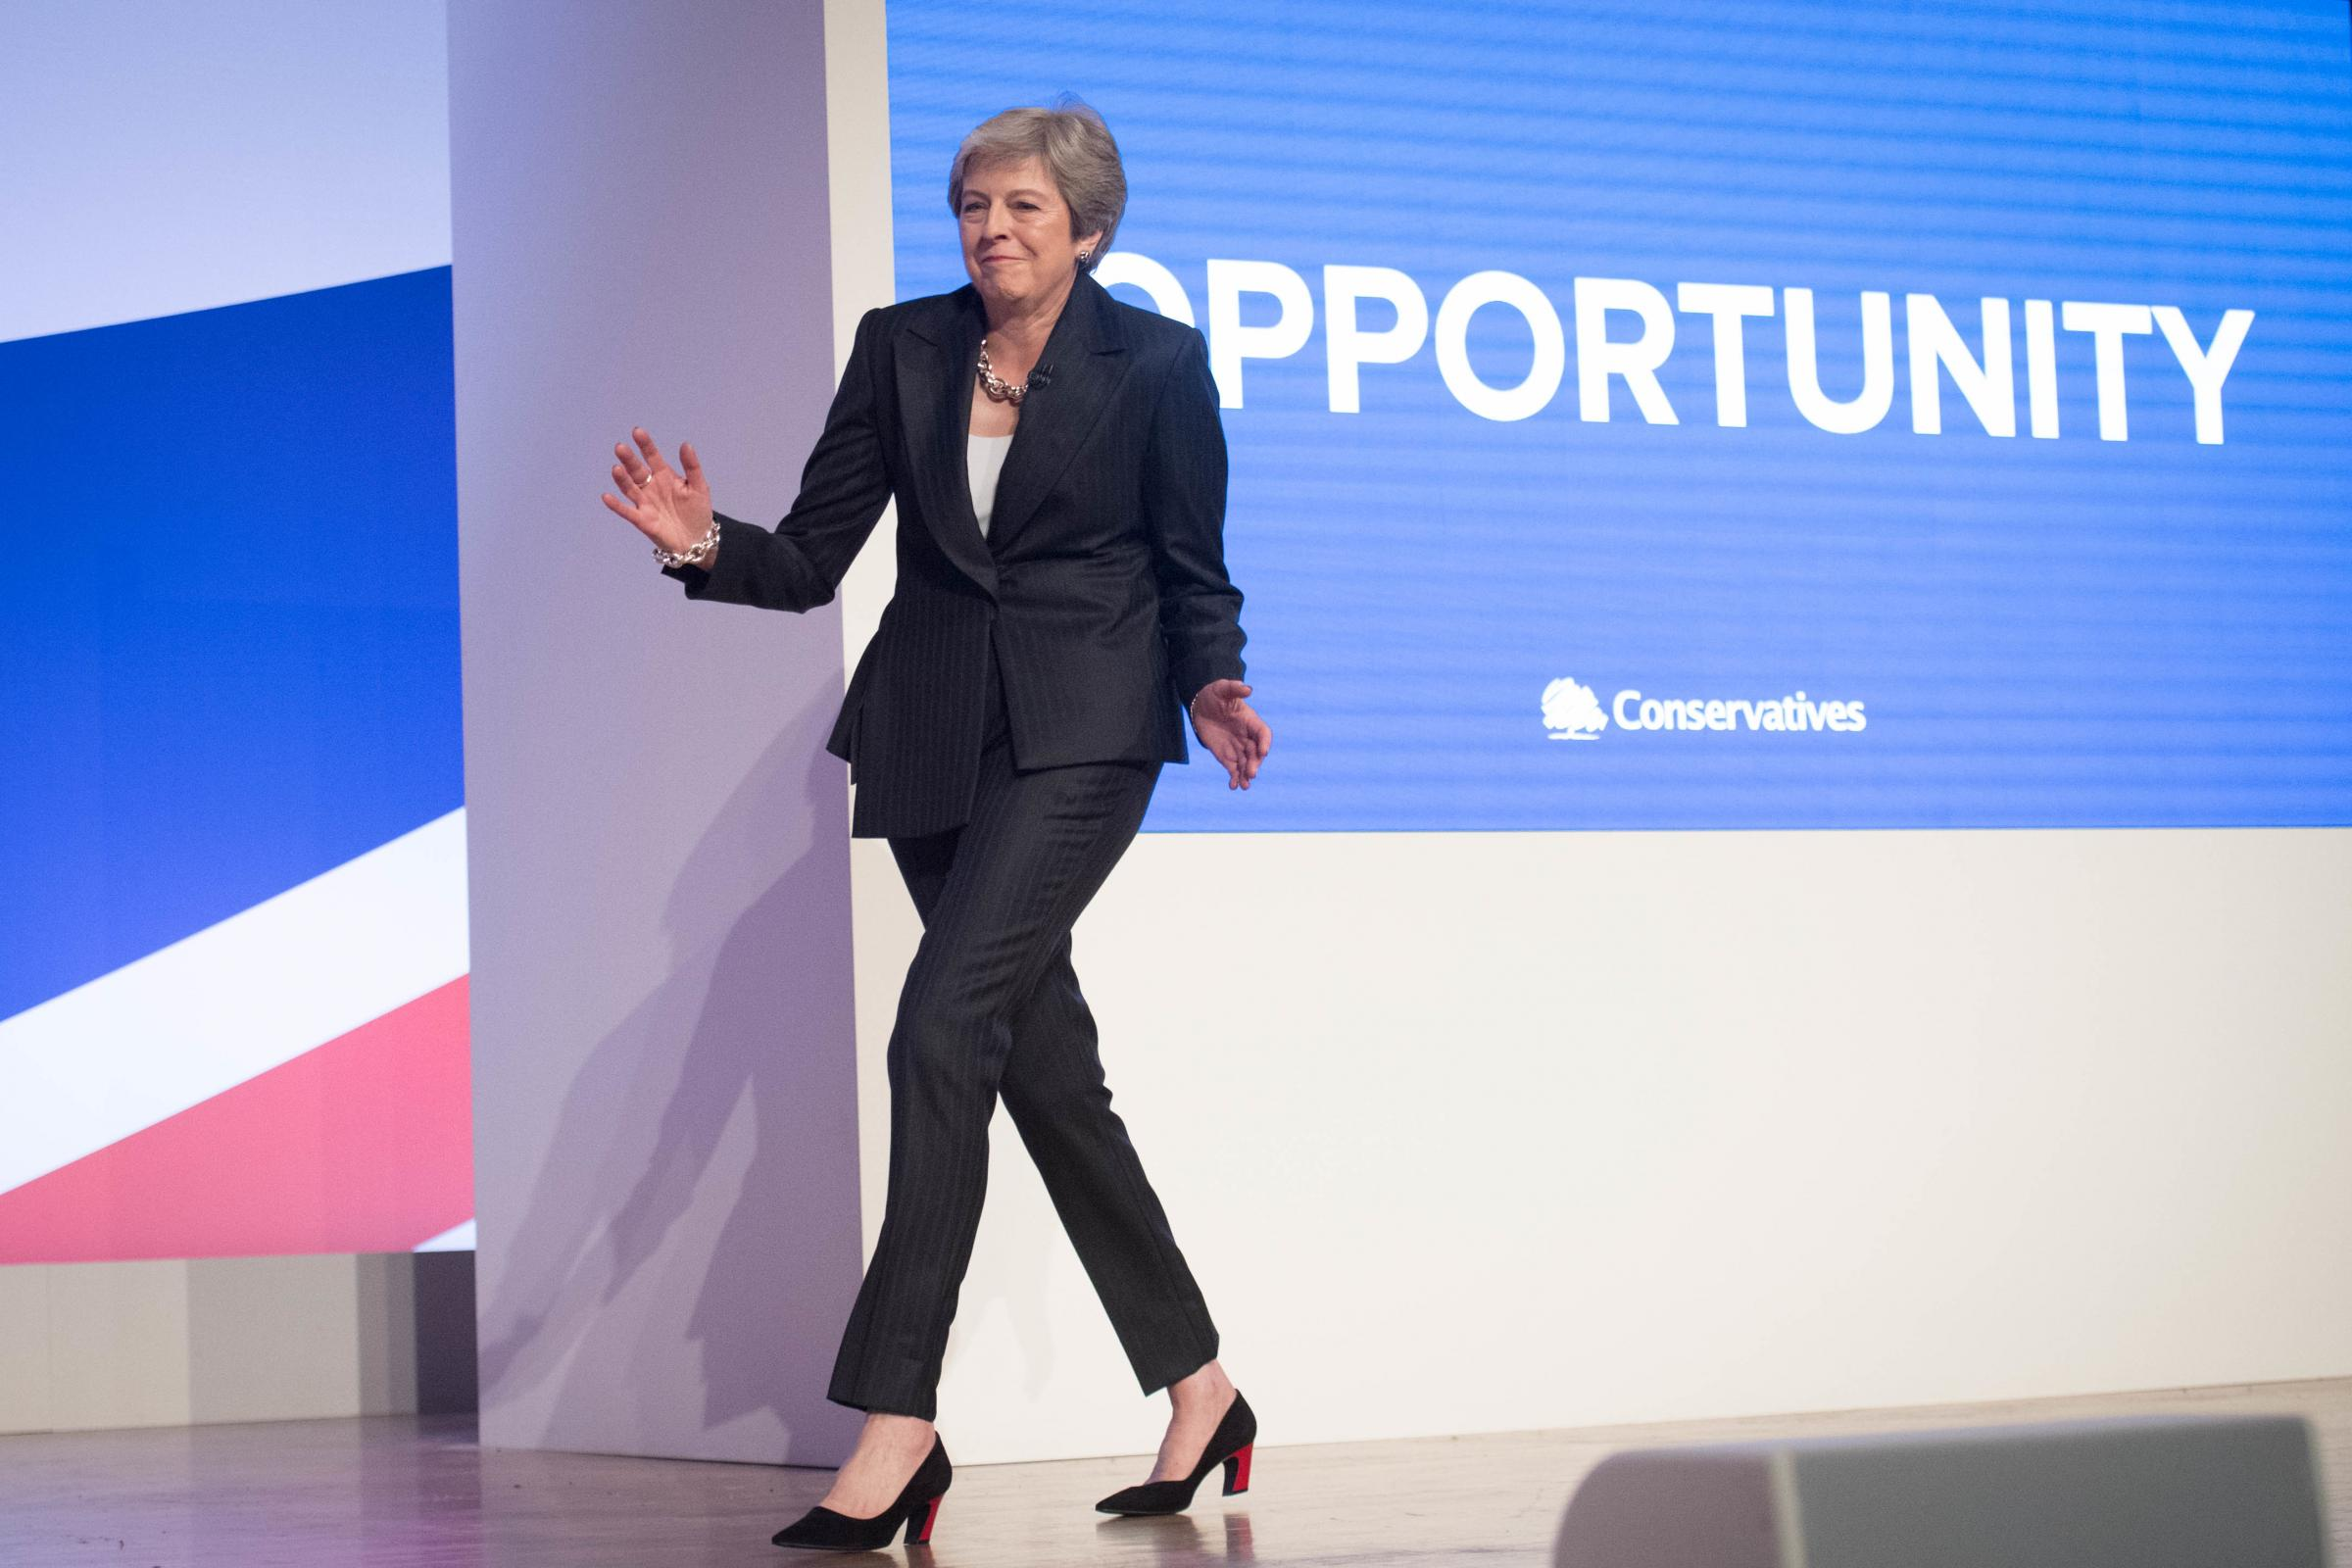 Prime Minister Theresa May dances as she arrives on stage to make her keynote speech at the Conservative Party annual conference at the International Convention Centre, Birmingham. last week Picture: PA